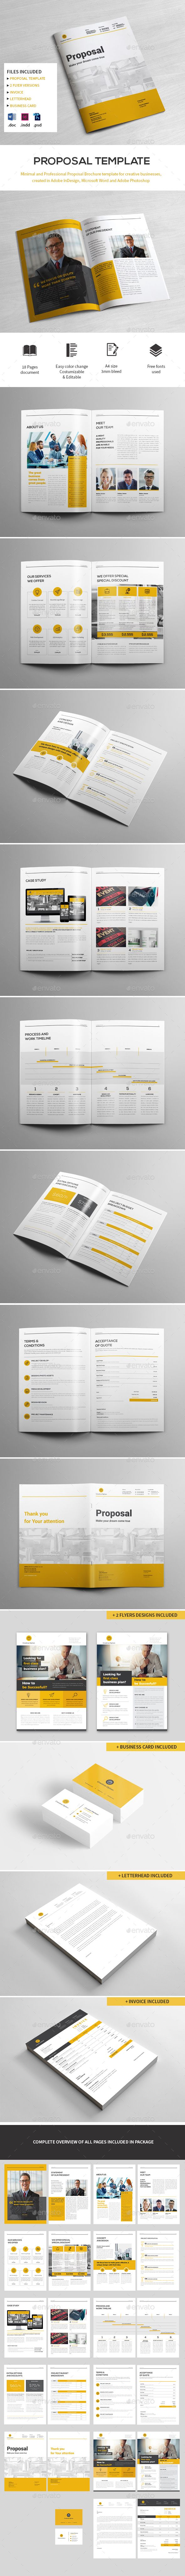 Proposal Template — Photoshop PSD #design #doc • Download ➝ https://graphicriver.net/item/proposal-template/21478000?ref=pxcr